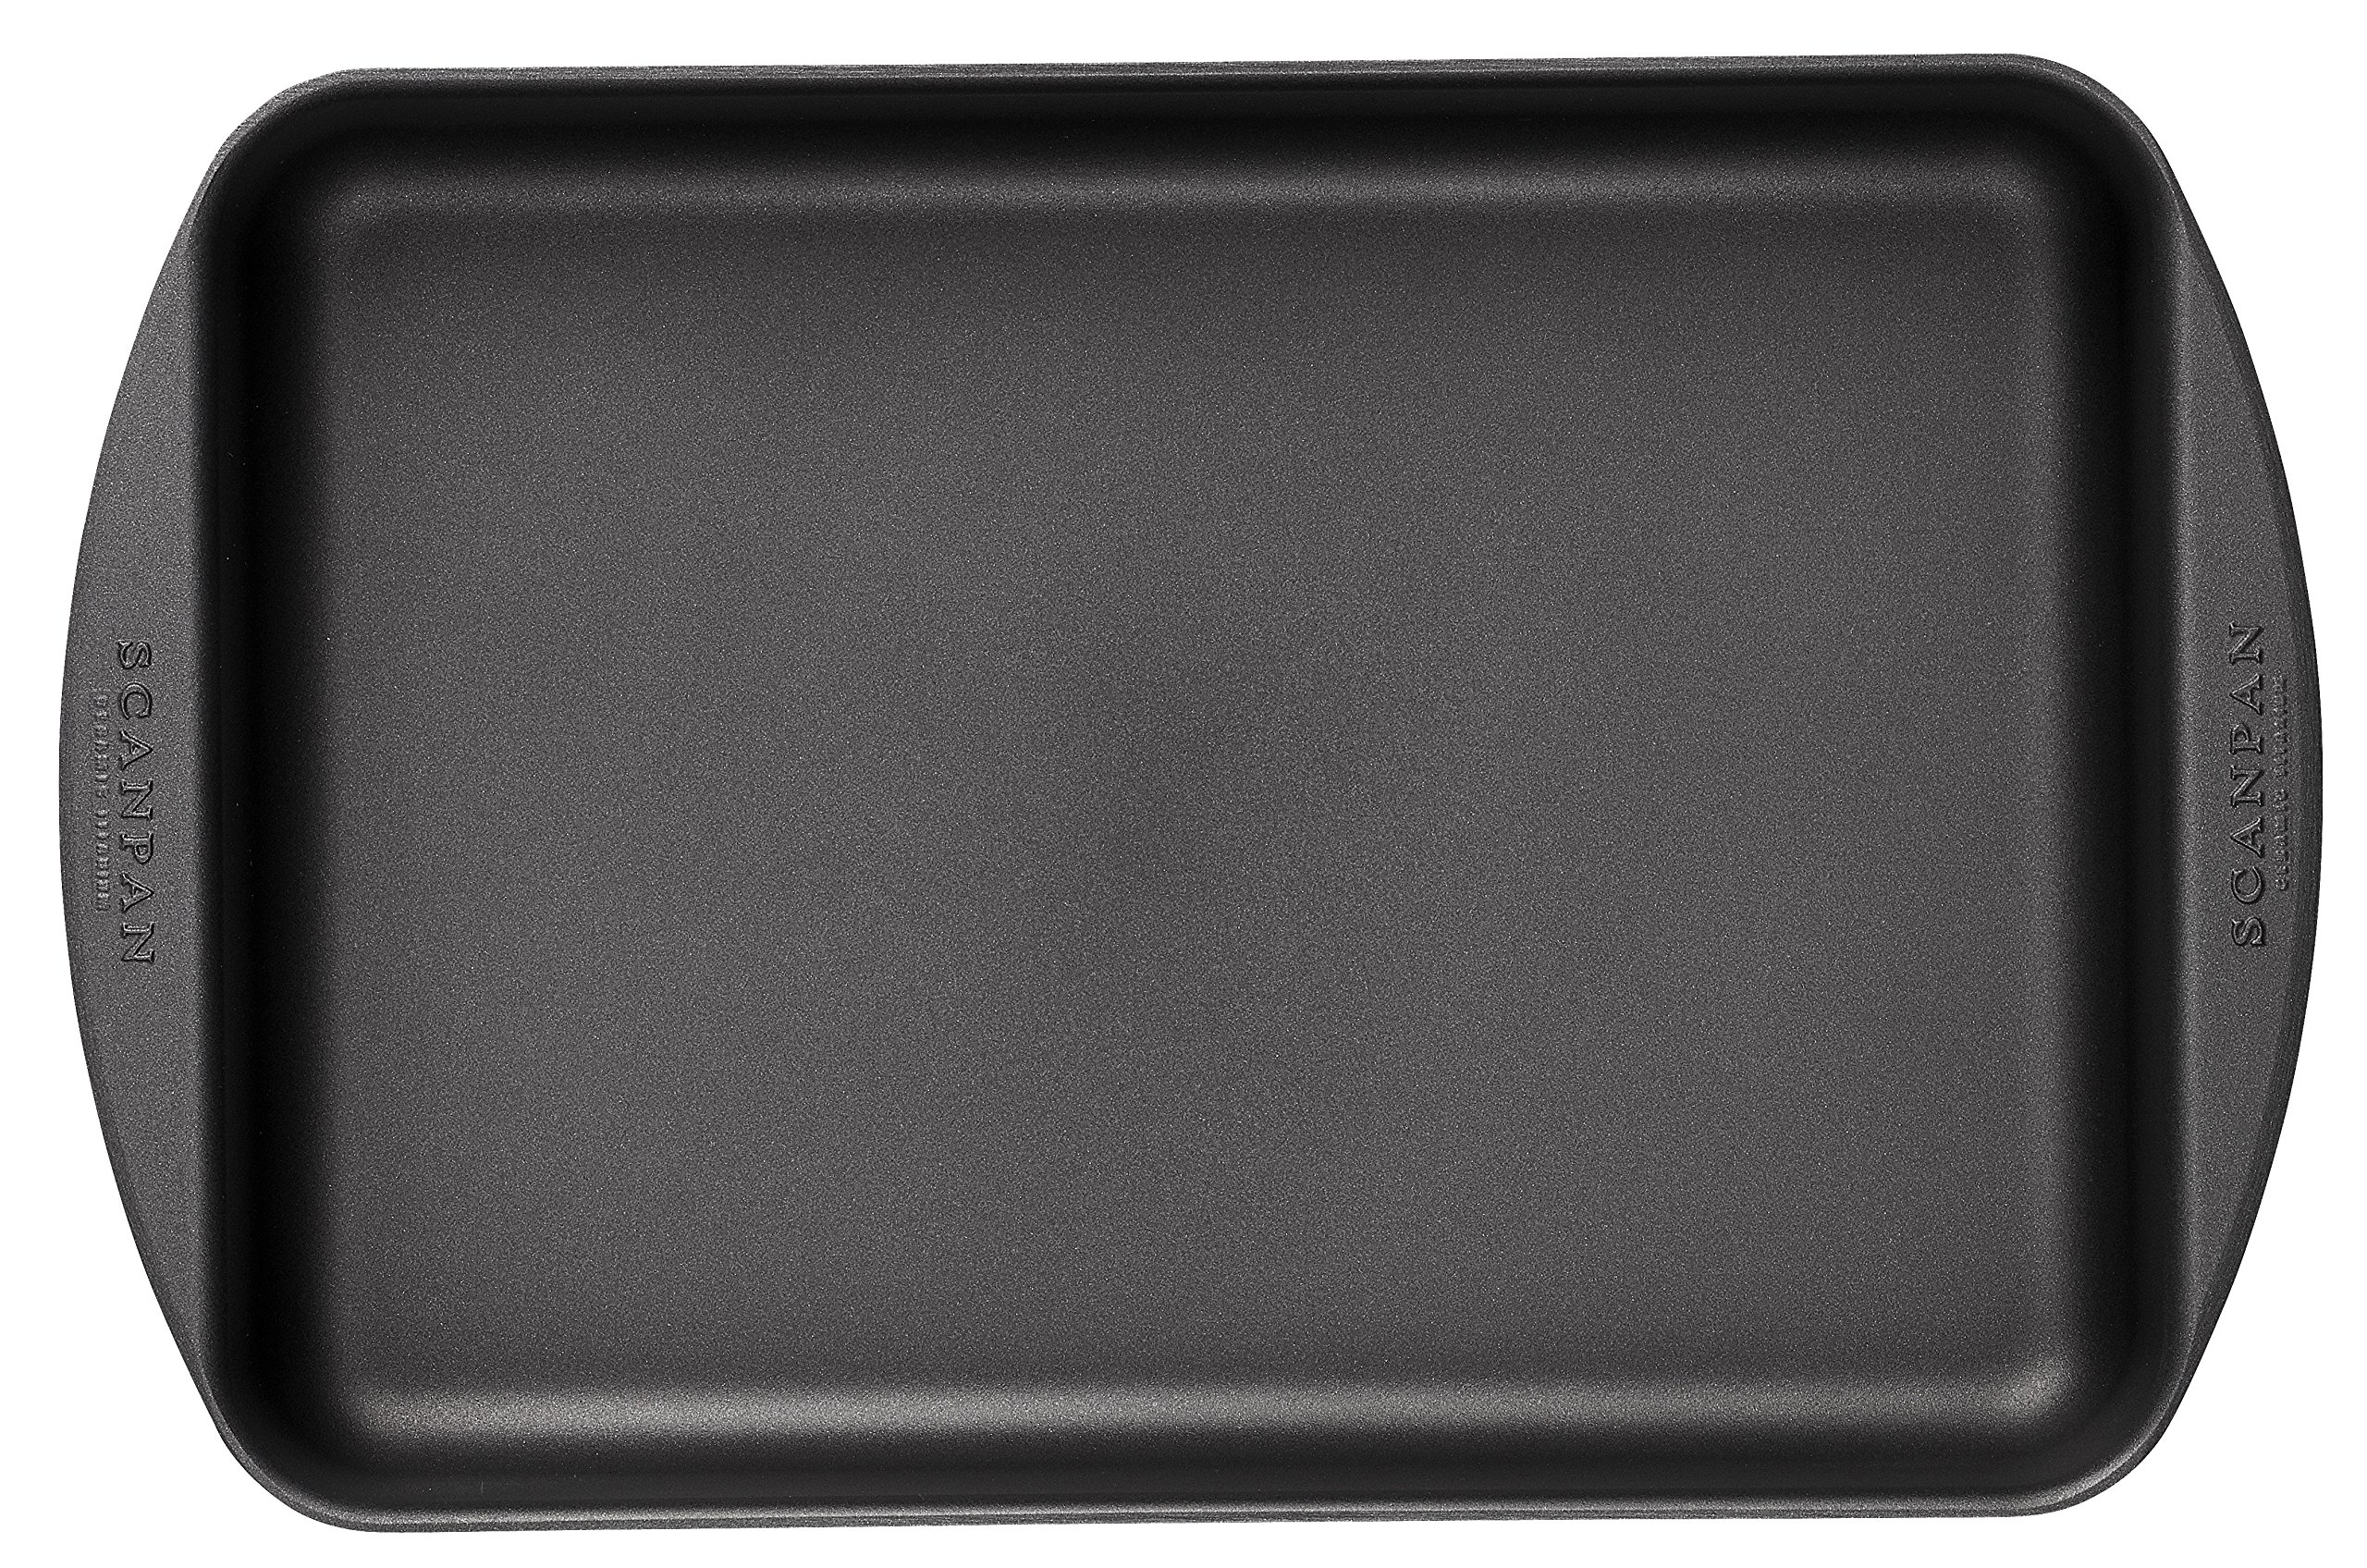 Scanpan Classic Roasting Pan, 3.25 QT, 13.5'' x 8.75'' by Scanpan (Image #3)